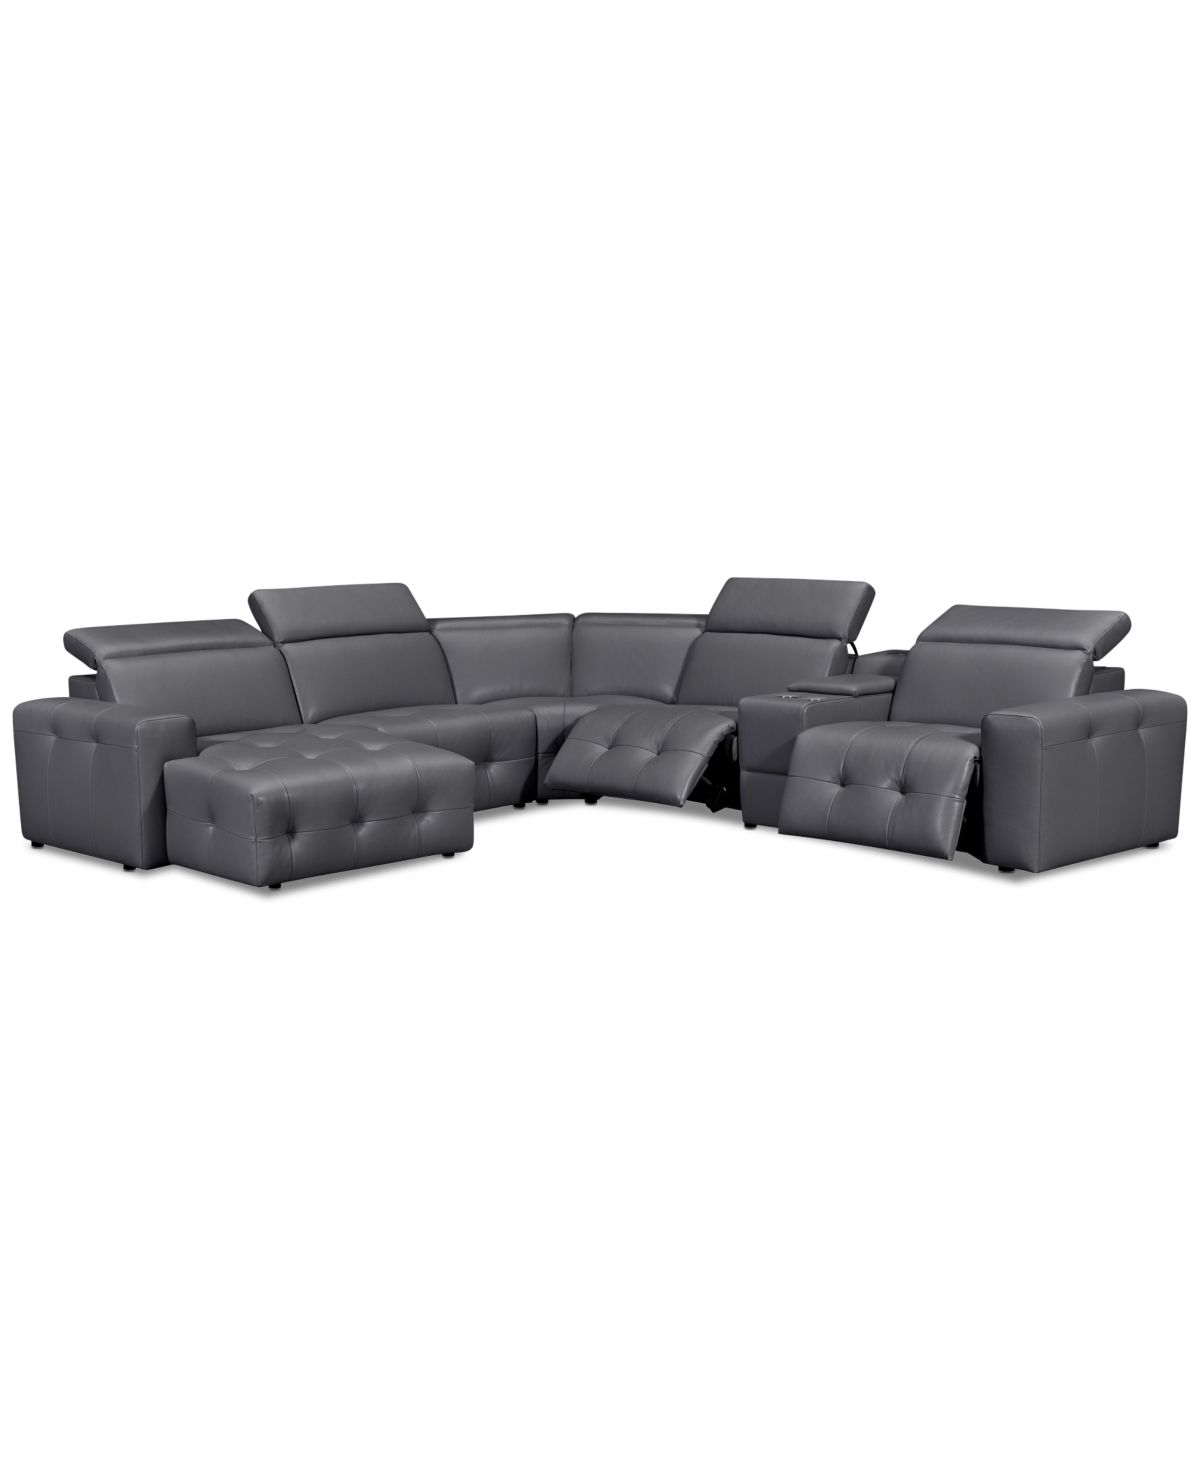 Haigan 6 Pc Leather Chaise Sectional Sofa With 2 Power Recliners Created For Macy S Dreamhomepop Com Home